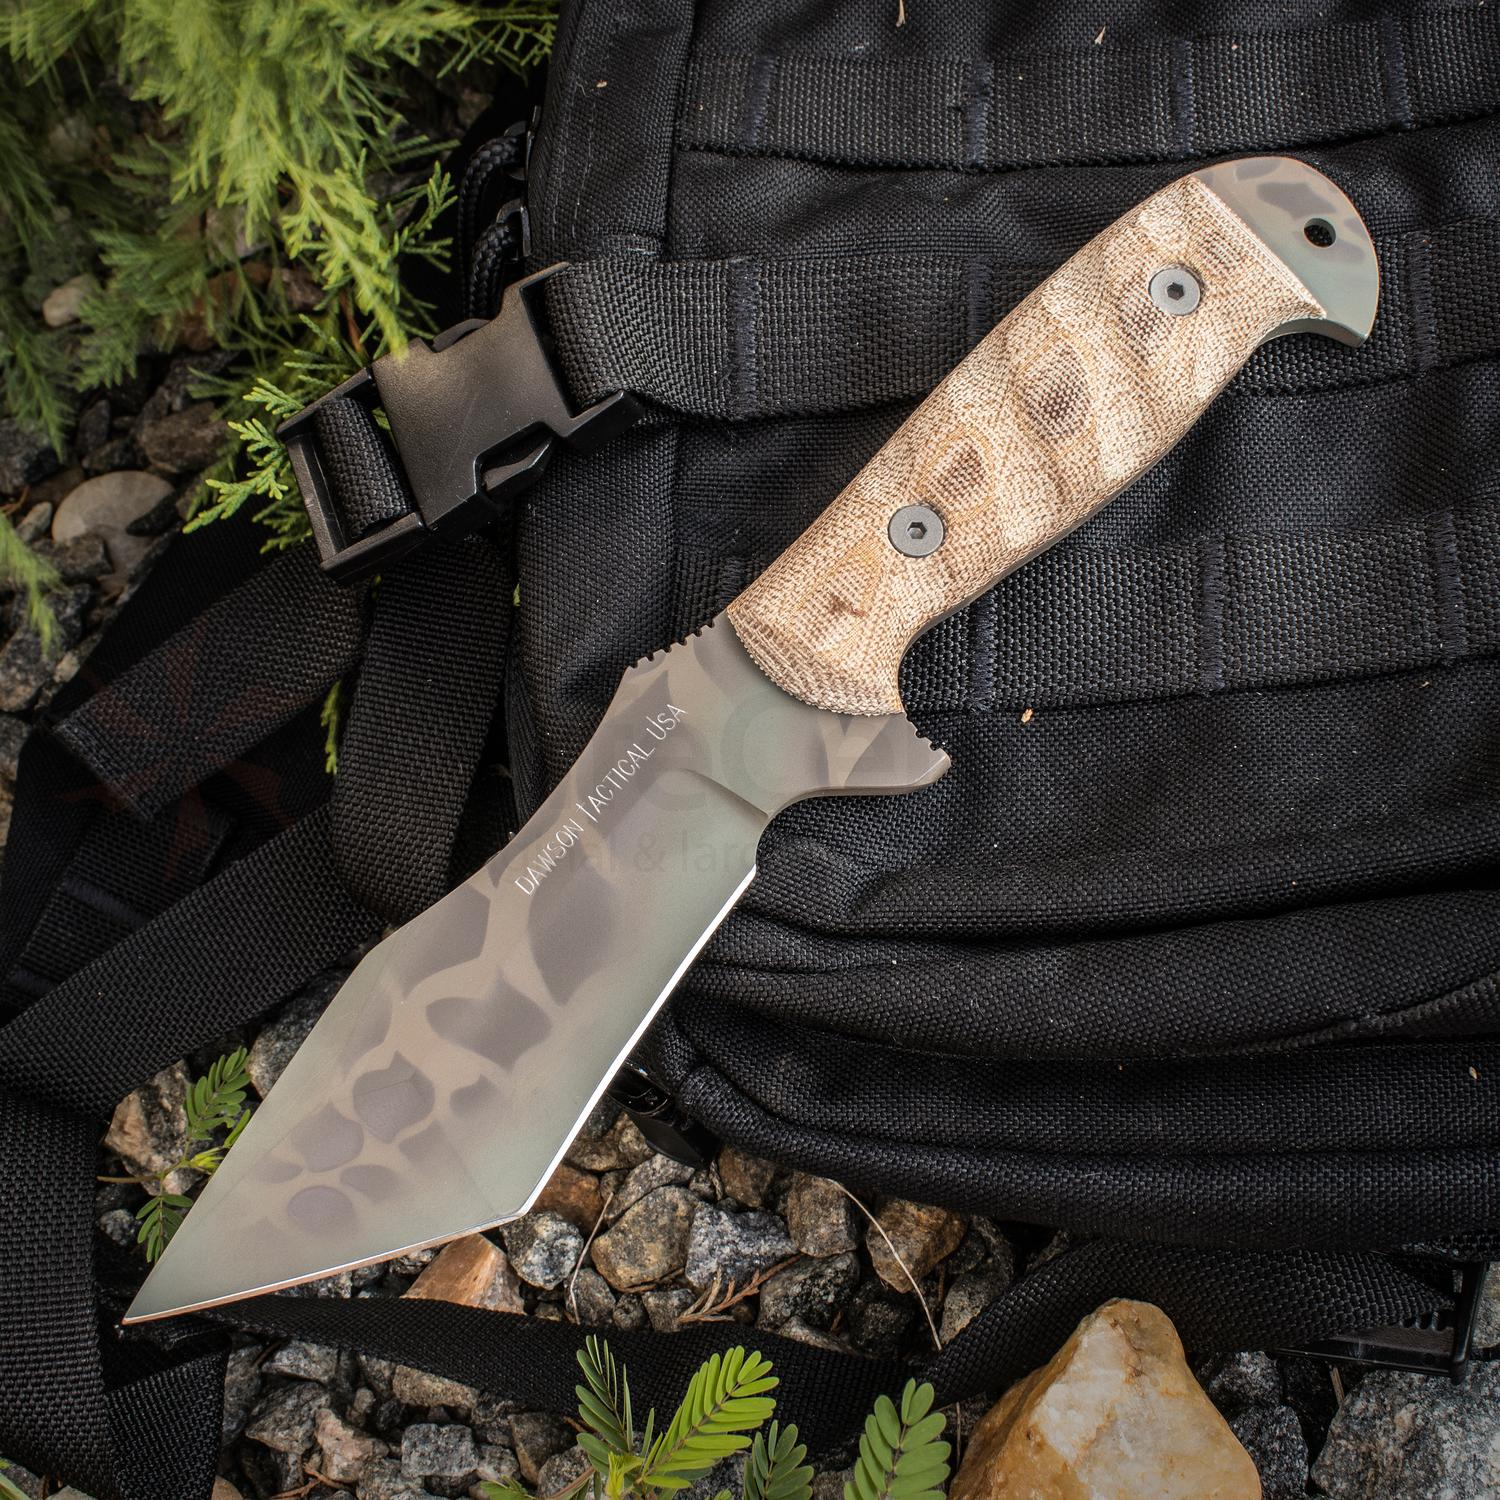 Dawson Knives Custom Wraith Fixed 5.25 inch 80CrV2 Sandstone Blade, Tan Micarta Handles, Highlander Kryptek Kydex Sheath